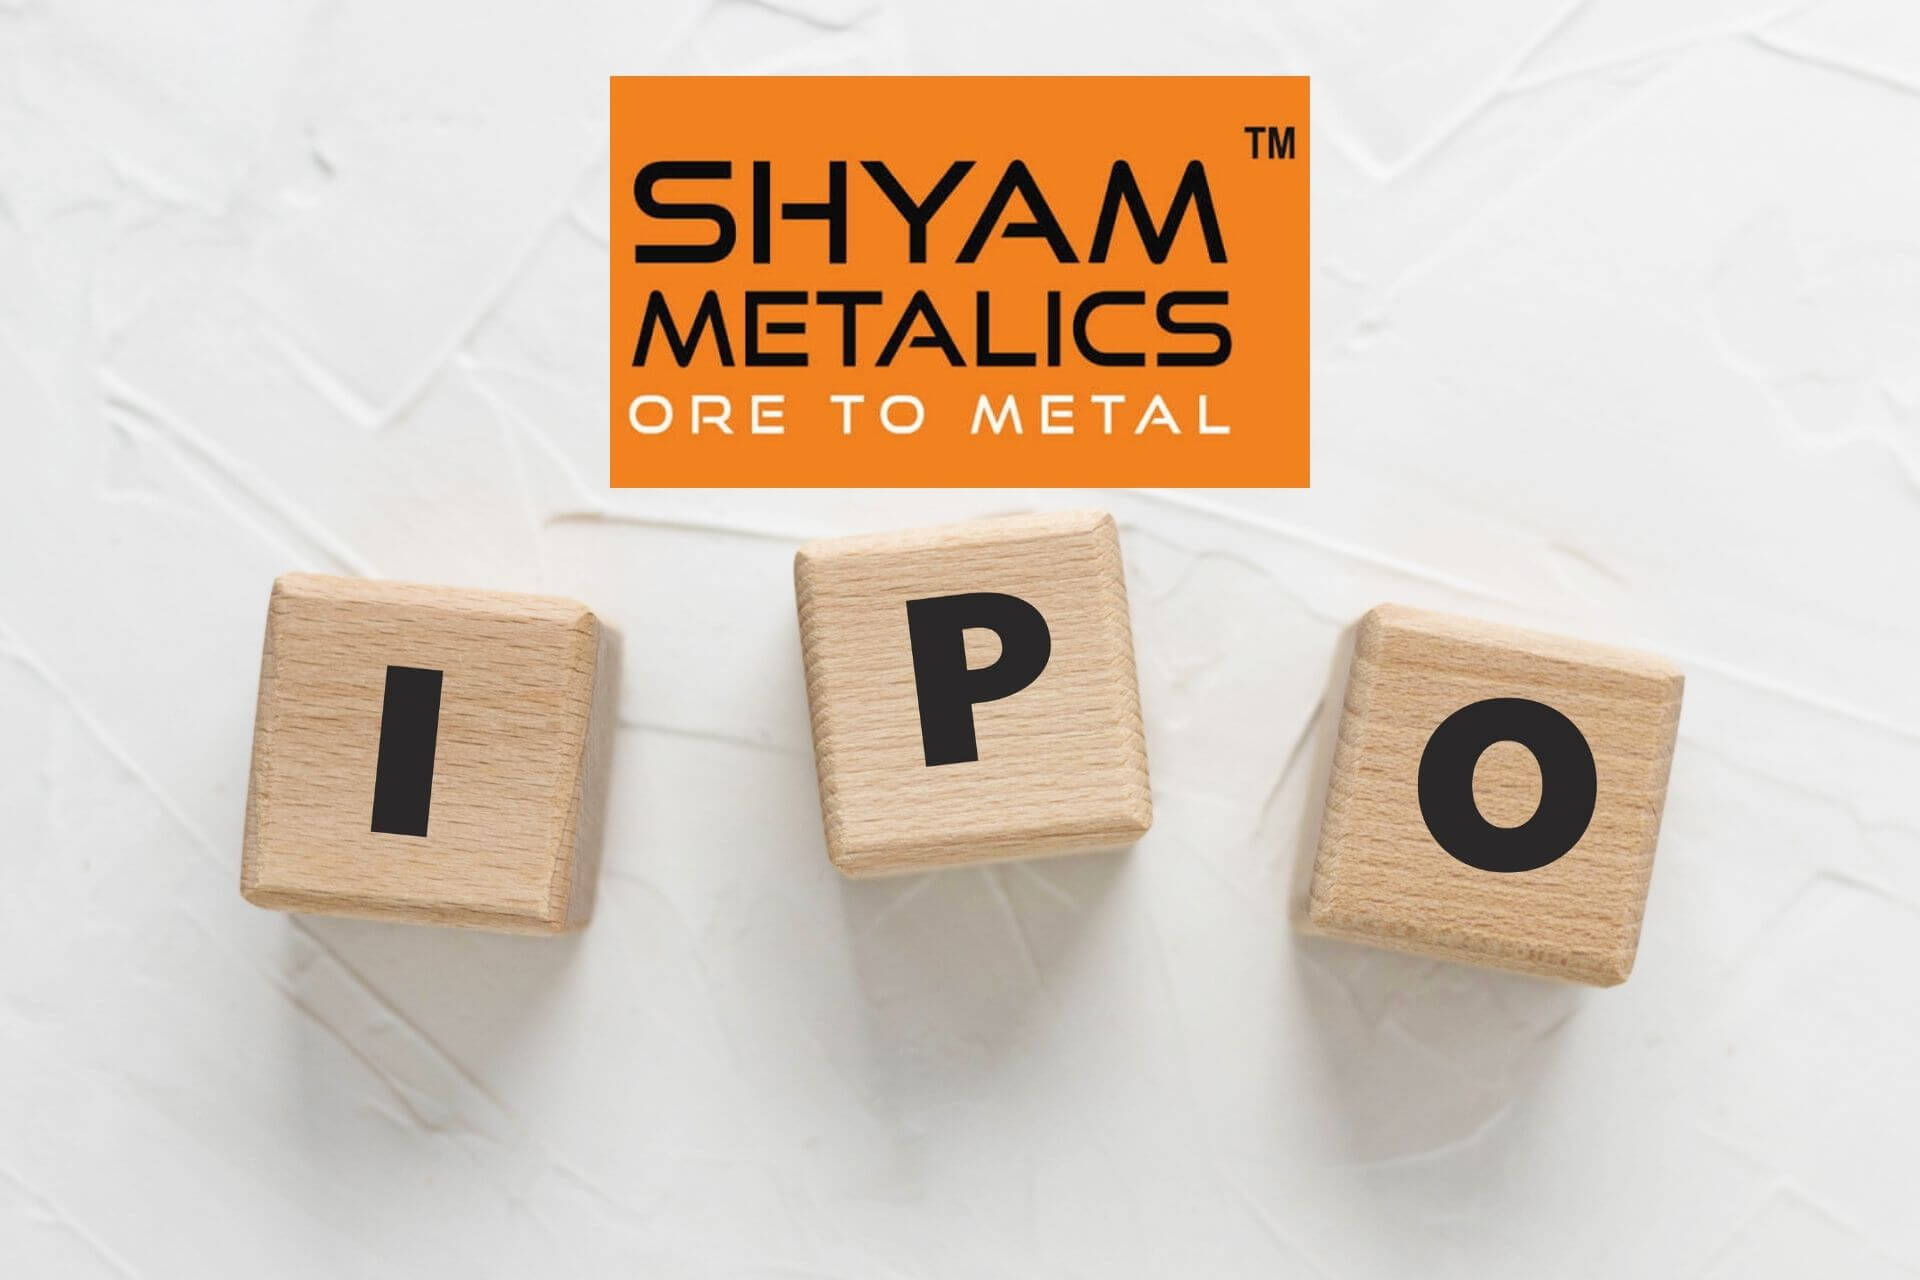 Shyam Metalics IPO Review 2021 – IPO Price, Offer Dates & Details!